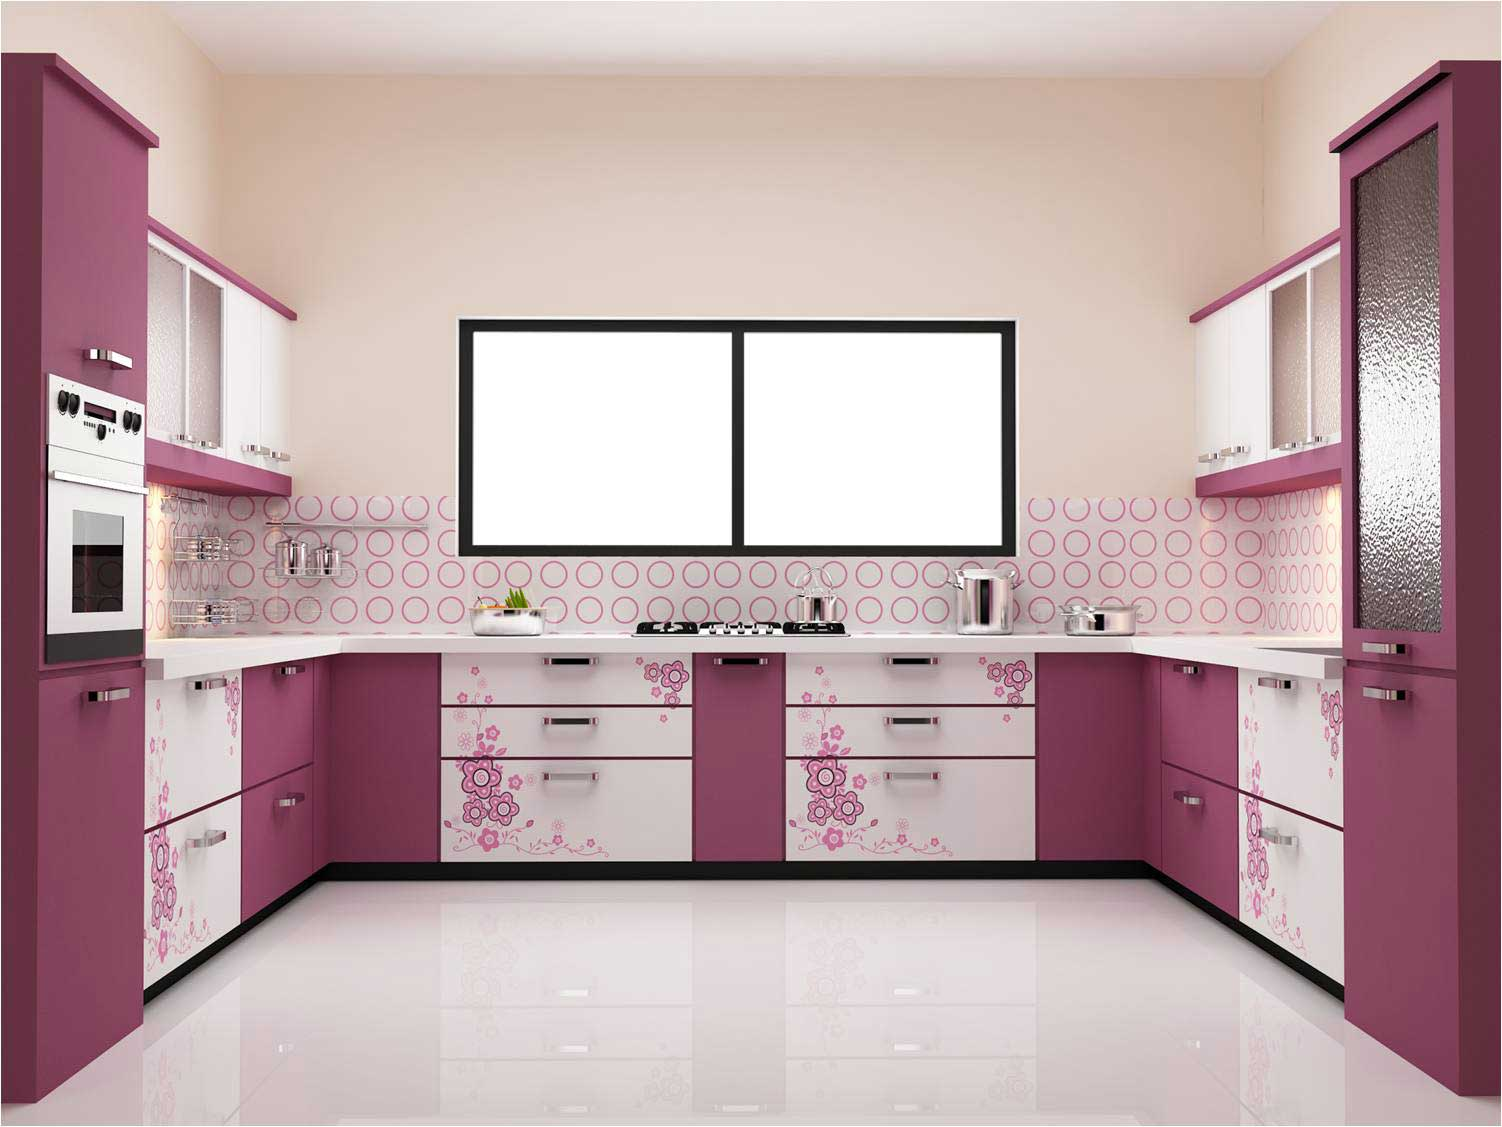 Modular kitchen installation interior decoration kolkata for Kichan farnichar design